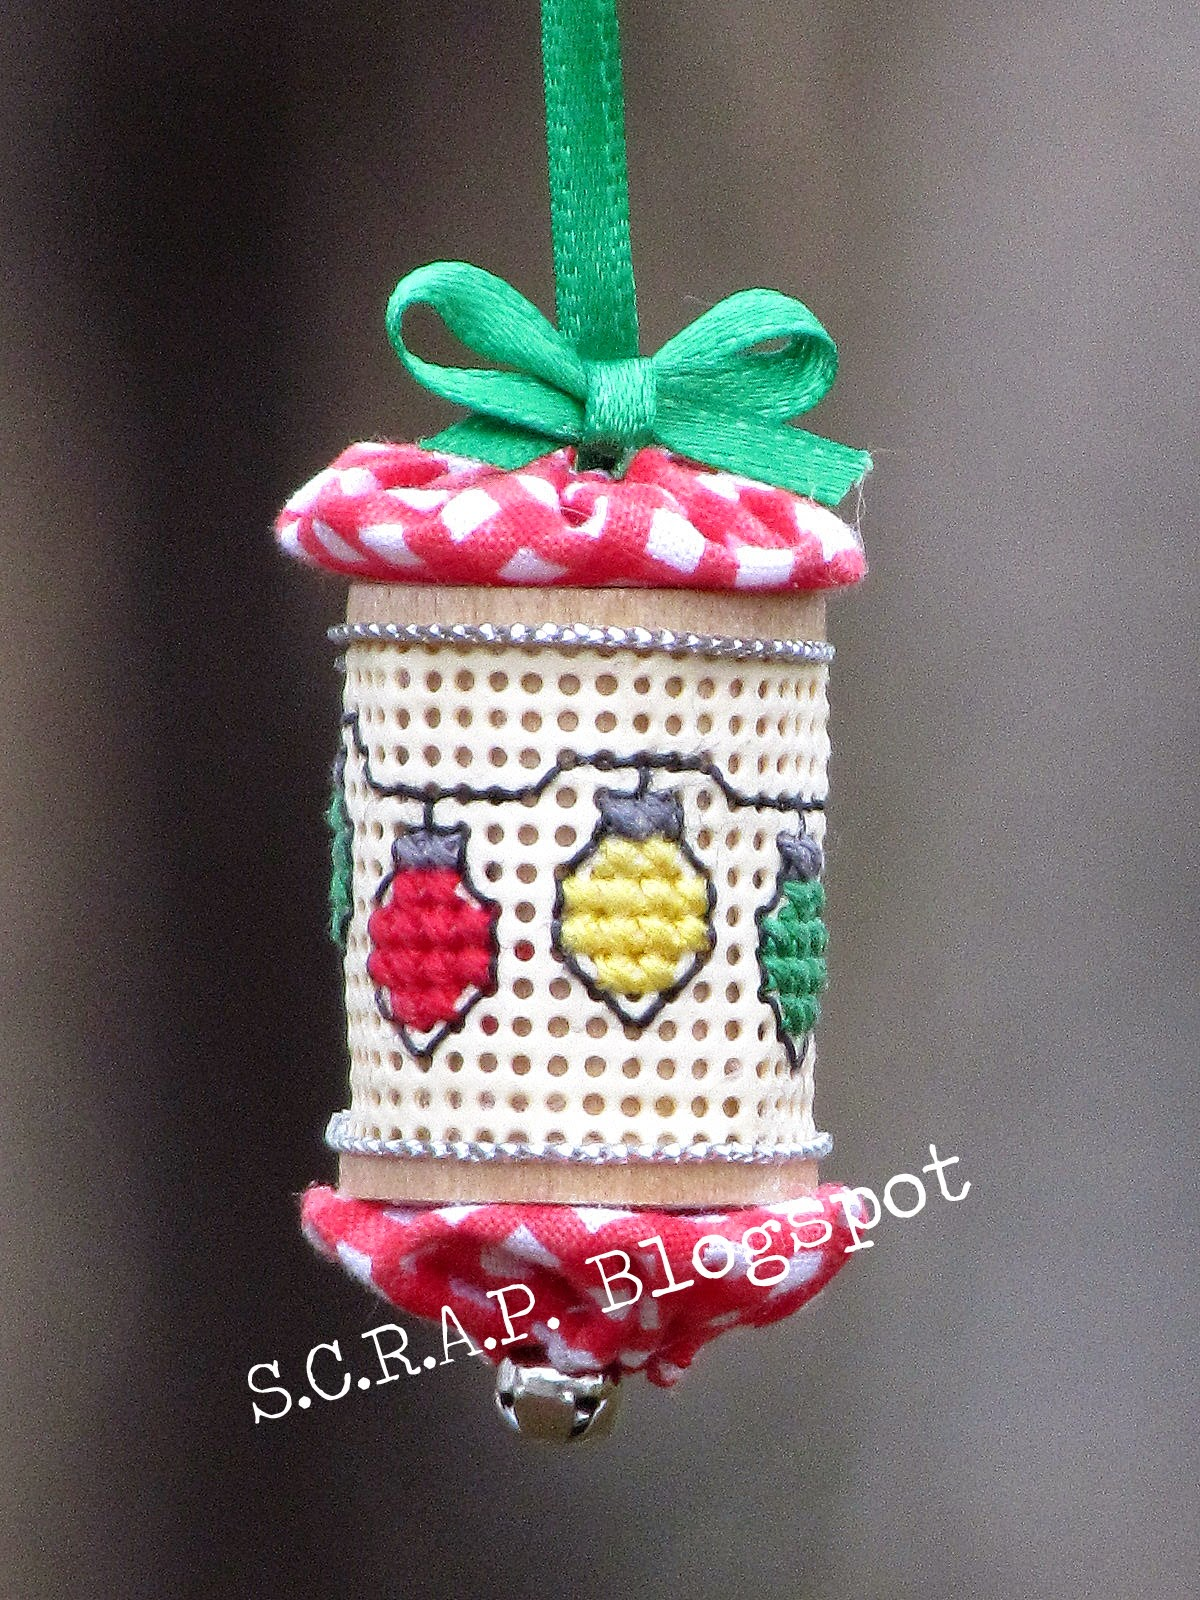 S.C.R.A.P. ~ Scraps Creatively Reused and Recycled Art Projects ...